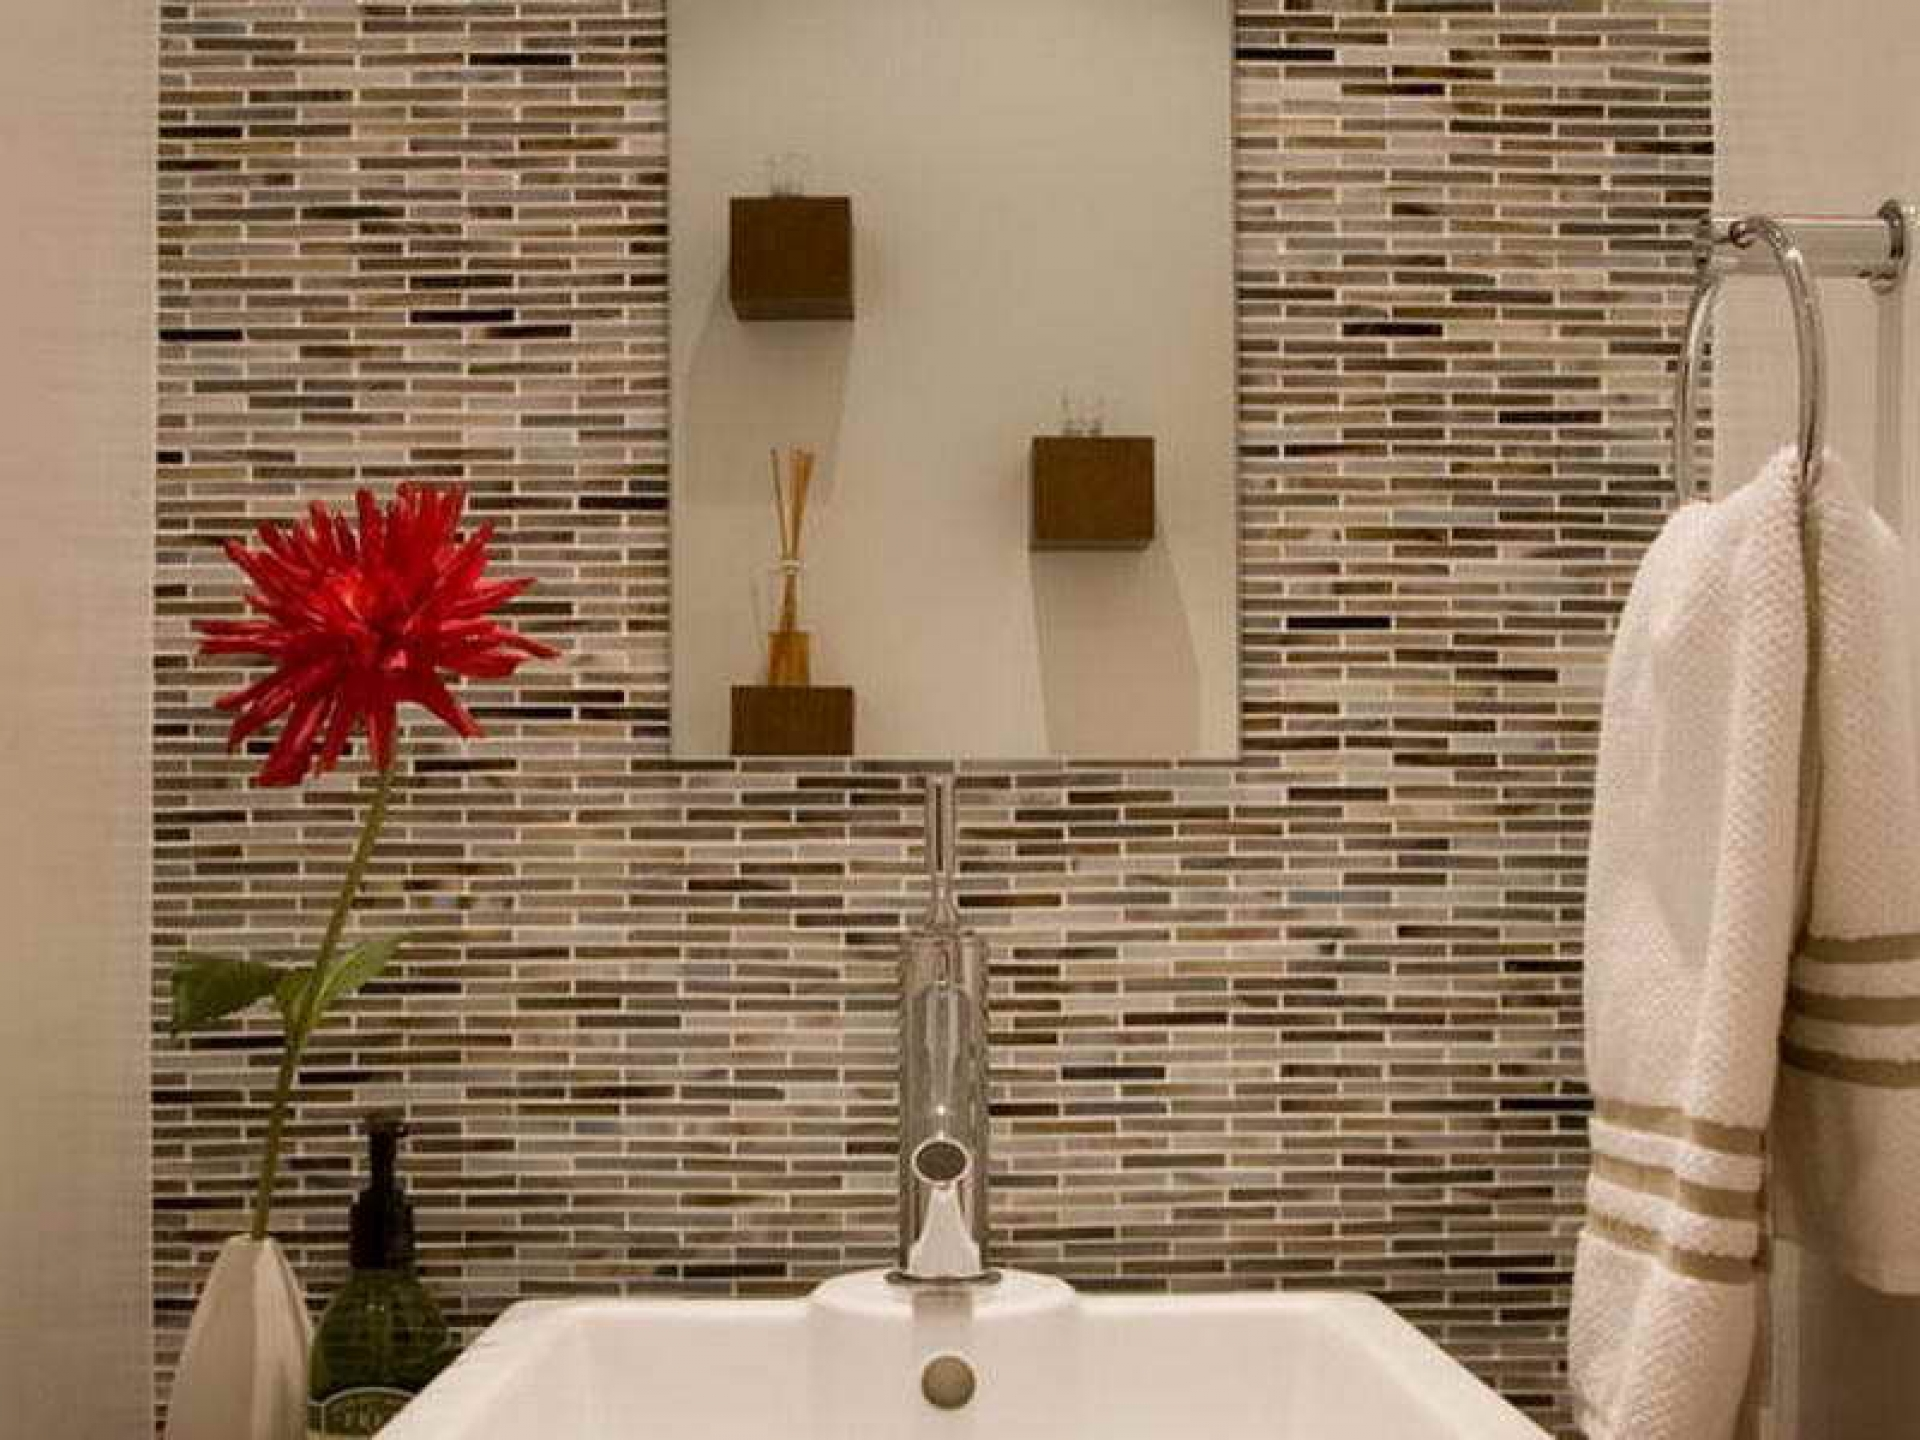 Bathroom Remodeling Phoenix AZ FREE IN HOME ESTIMATES - Bathroom remodeling phoenix az